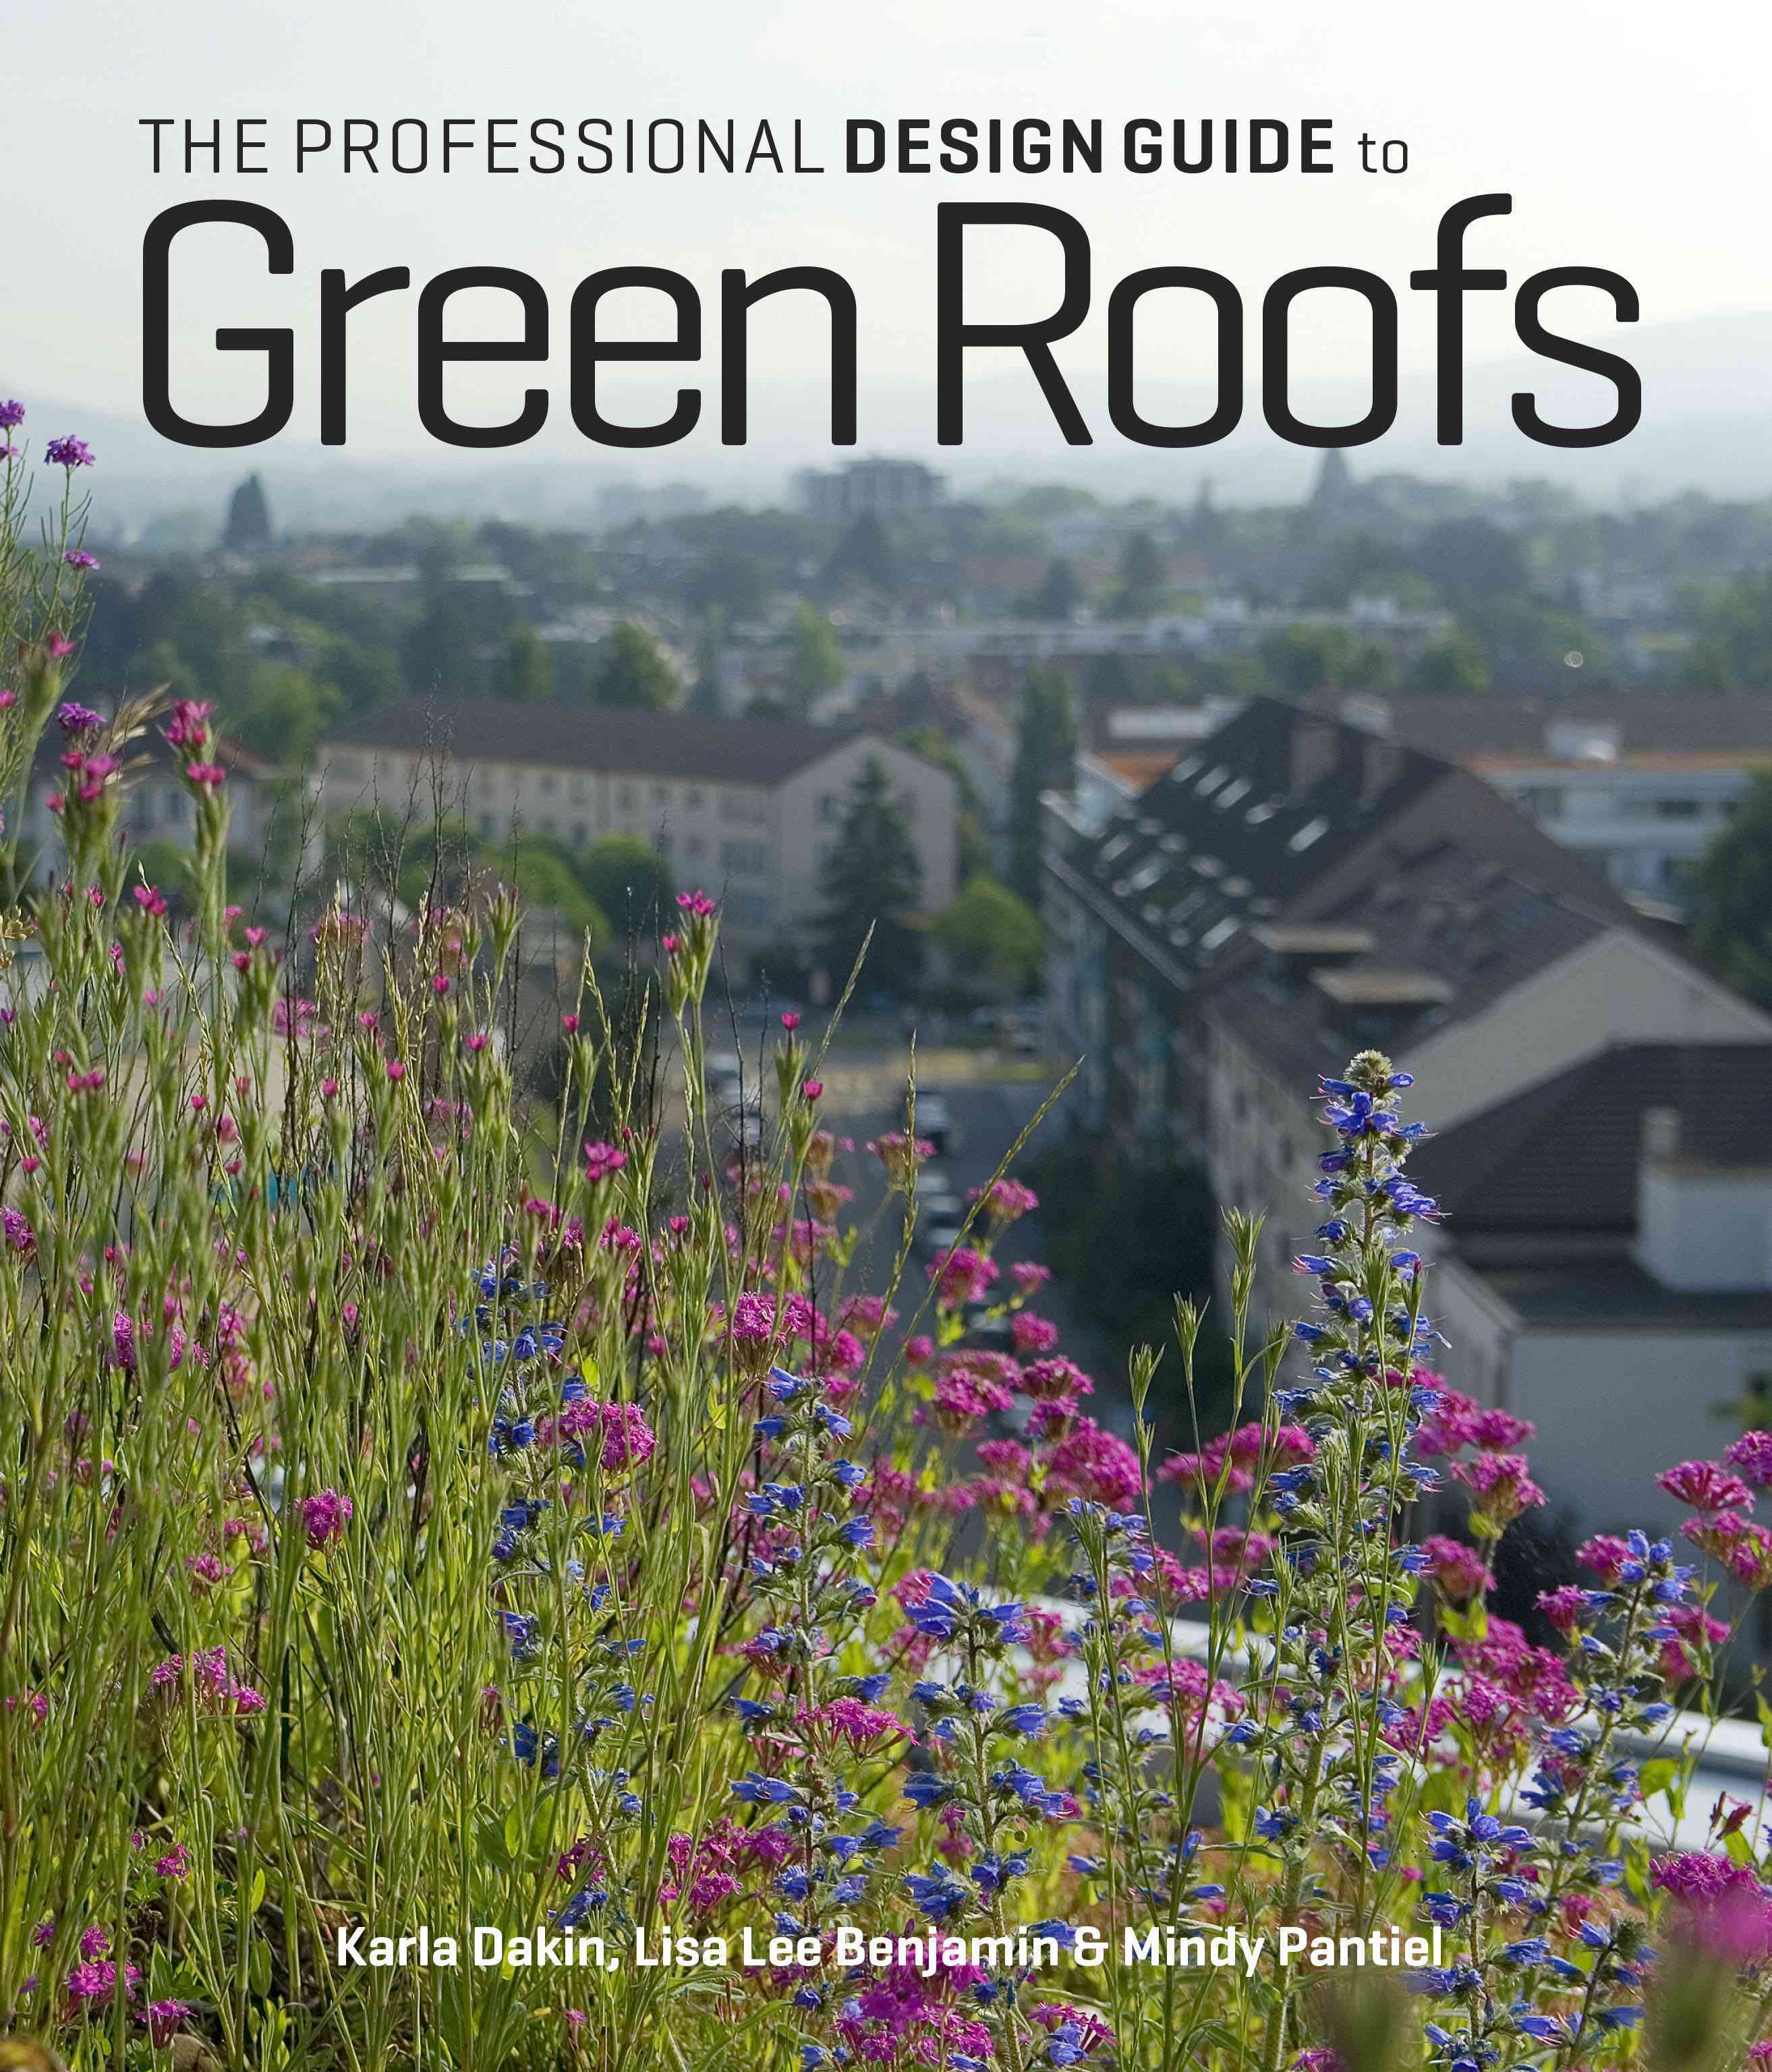 The Professional Design Guide to Green Roofs (Hardcover)